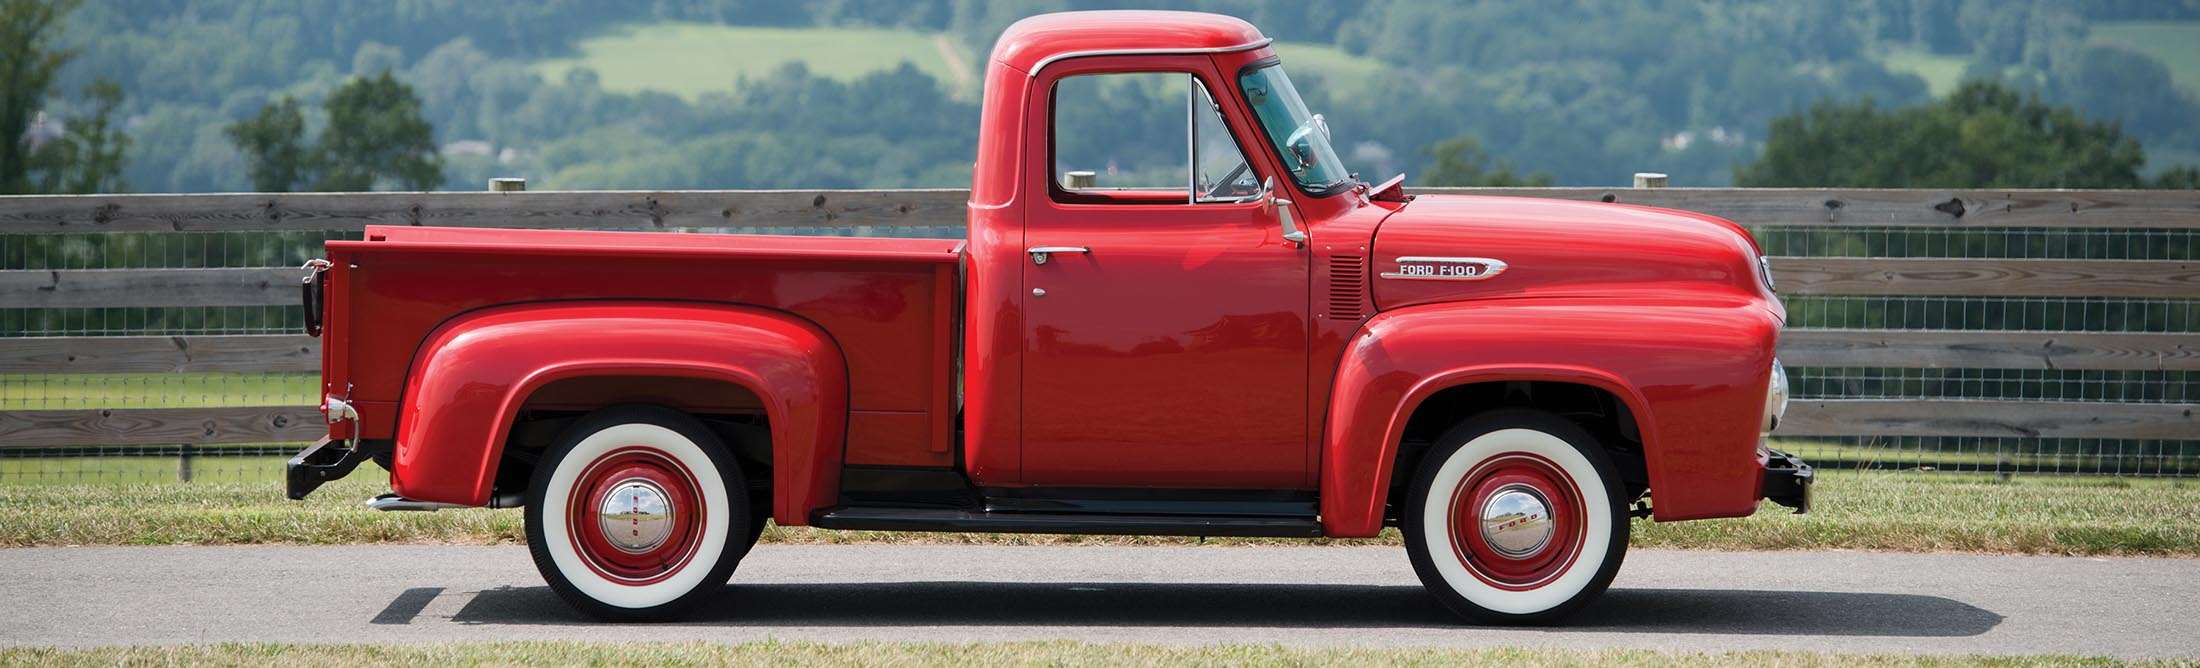 Why Nows The Time To Invest In A Vintage Ford Pickup Truck Bloomberg 1955 F100 Pick Up For Sale